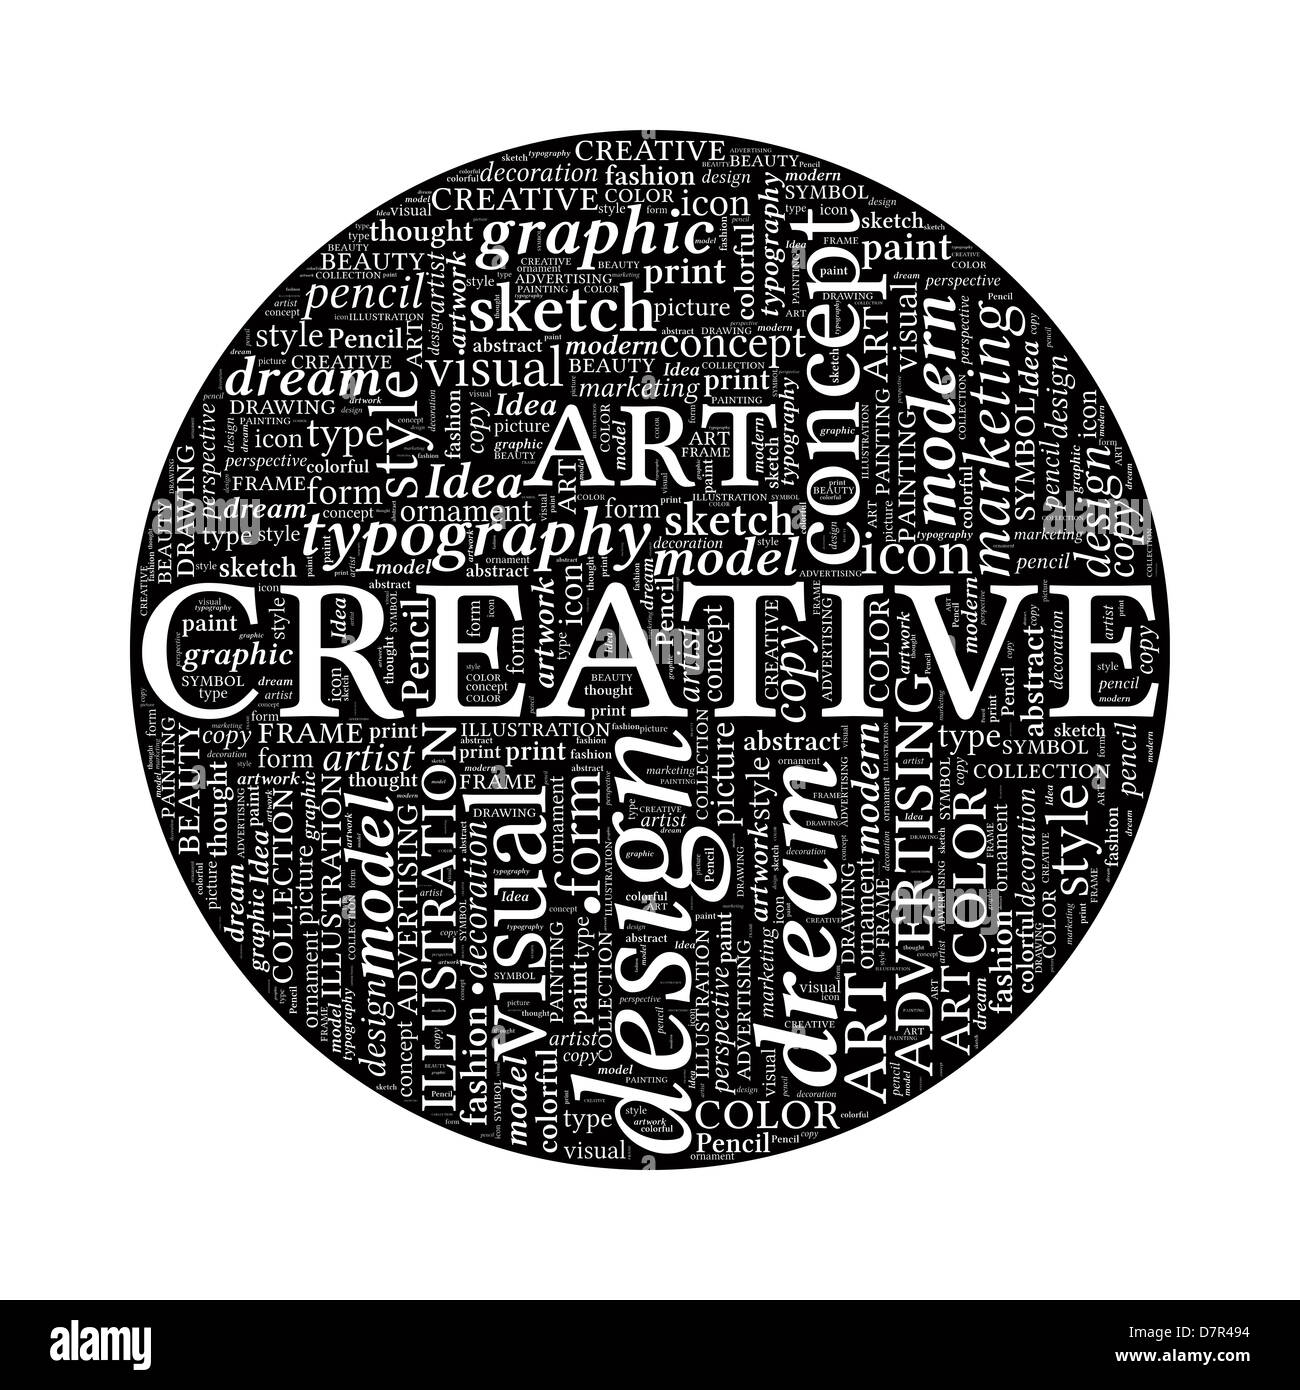 Creative design concept black and white word cloud in circle